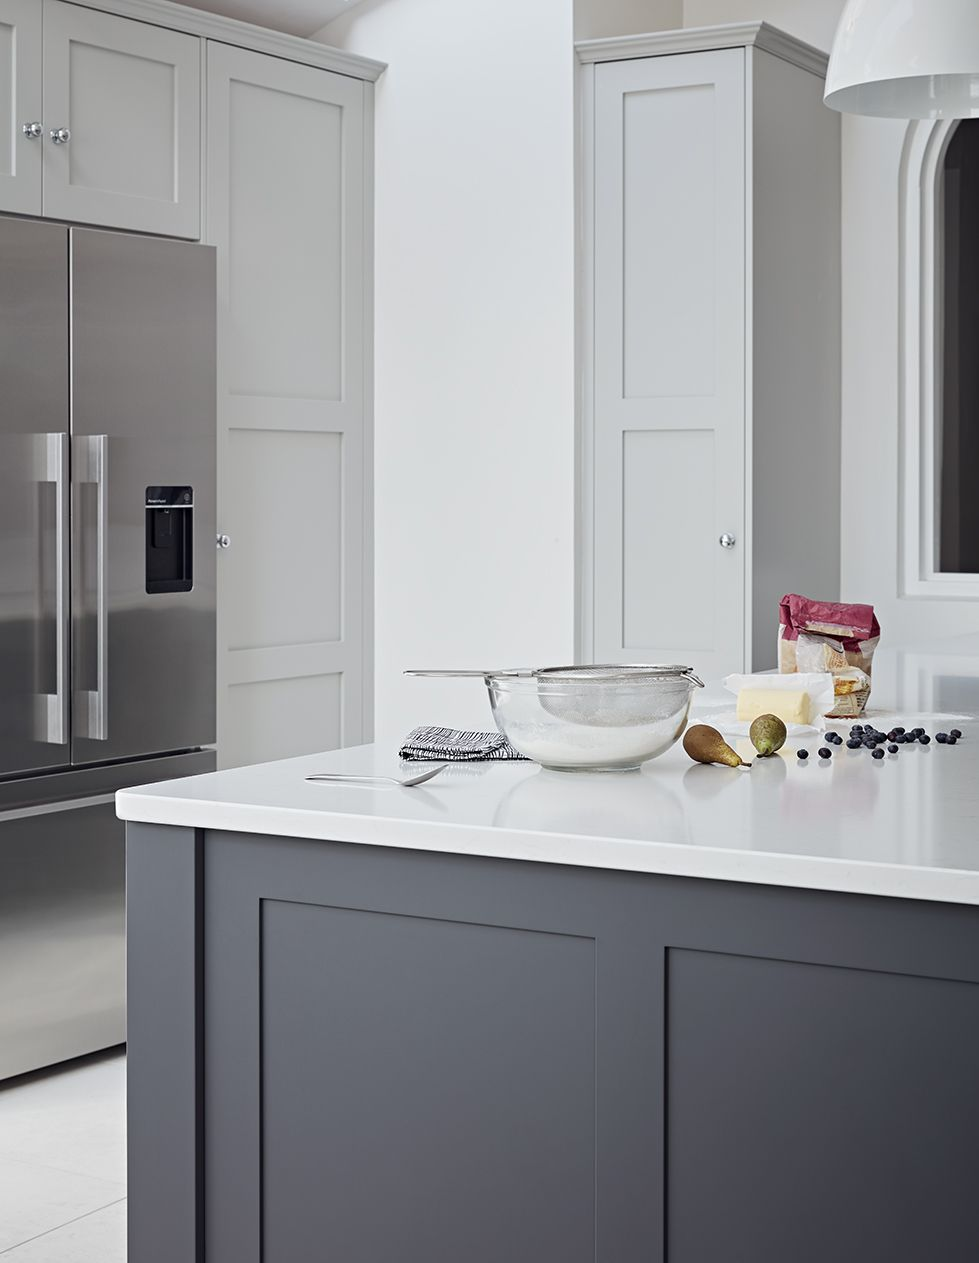 Timeless Original Shaker Kitchen By John Lewis Of Hungerford A Classic Mix Of Light And Kitchen Cabinets Painted Grey Grey Painted Kitchen Grey Shaker Kitchen